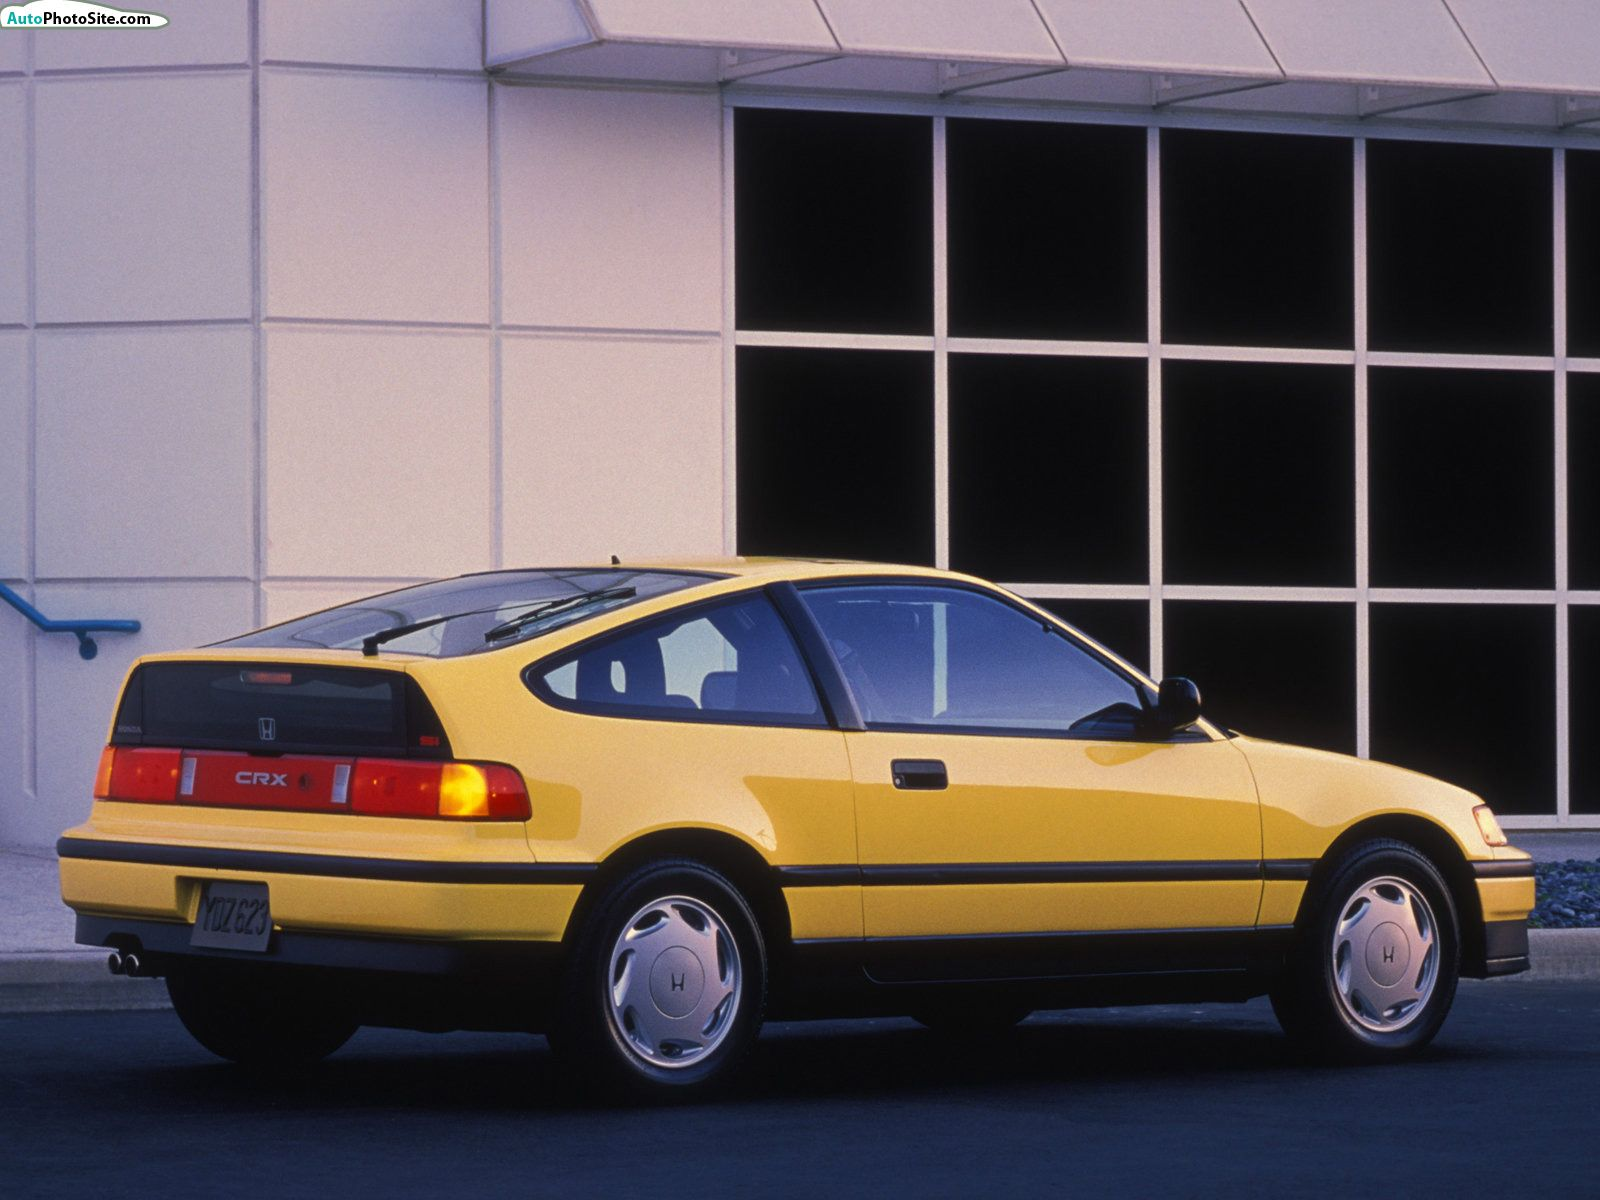 hight resolution of honda civic crx si 1988 review top 10 photo video and pictures